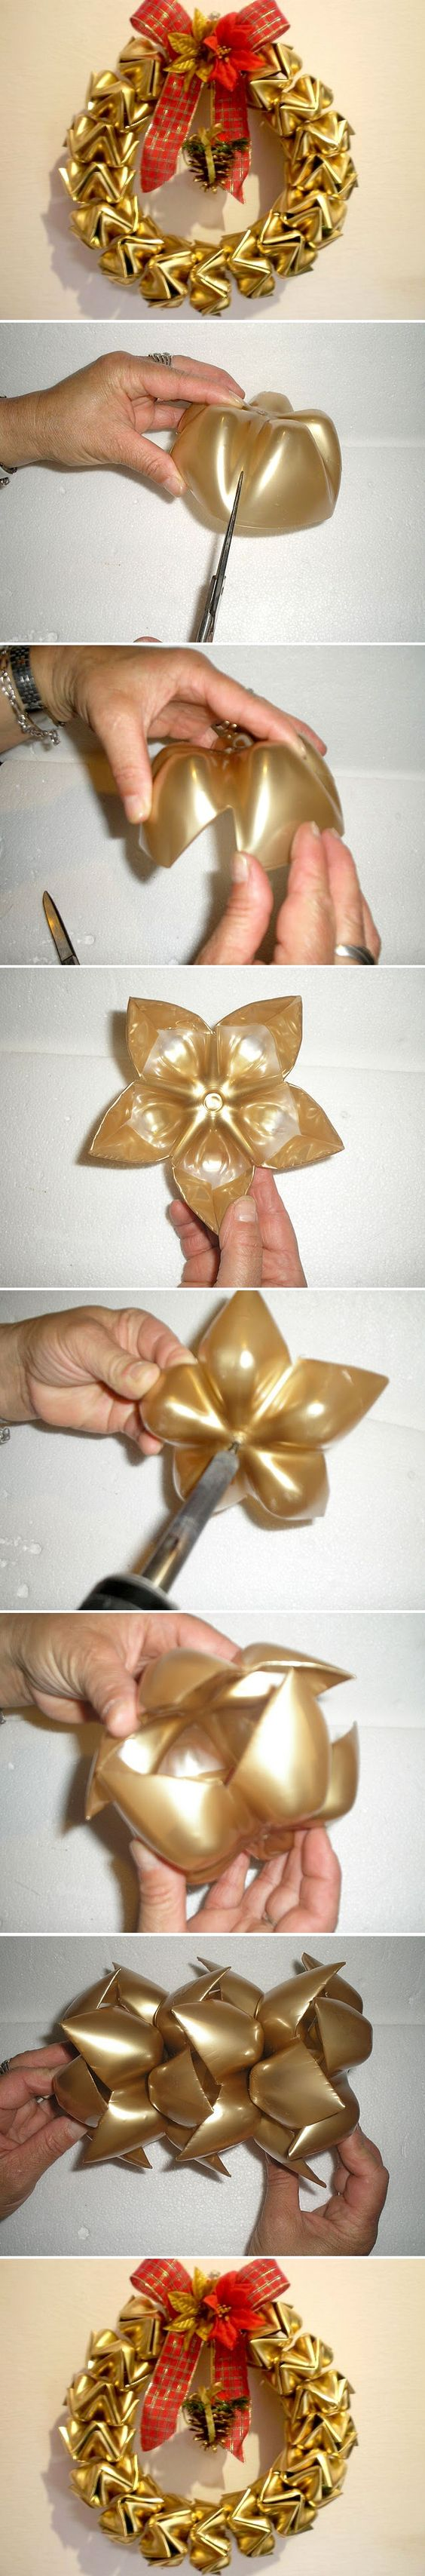 diy-decoracao-natal-material-reciclado-3